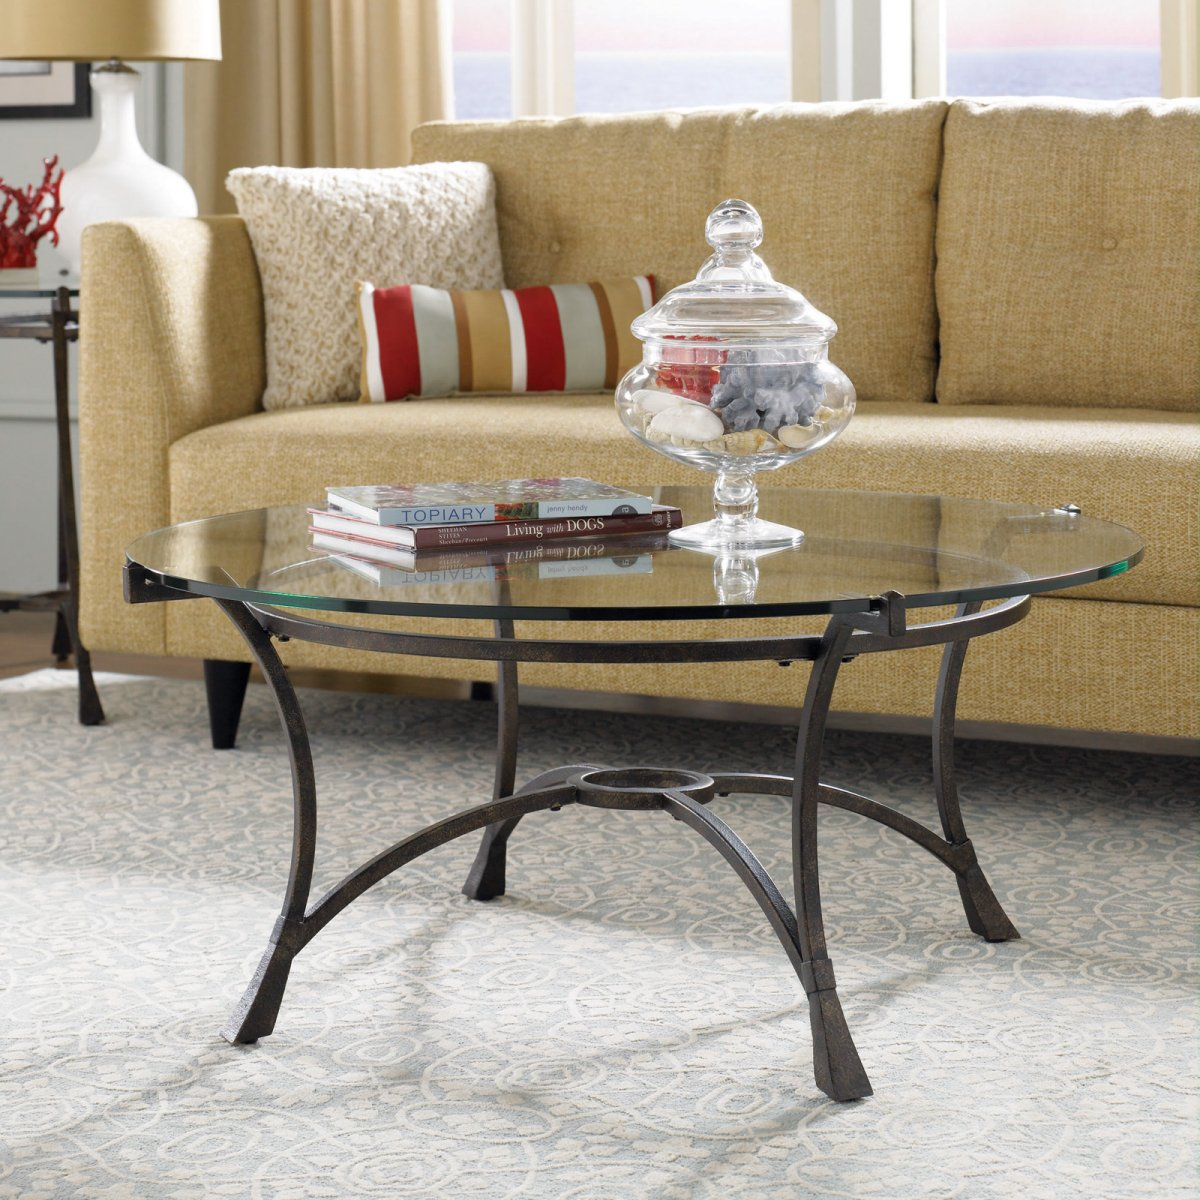 glass coffee tables that bring transparency your living room table with metal legs daring piece feels both elegant and industrial accents ideas chair covers for outdoor furniture